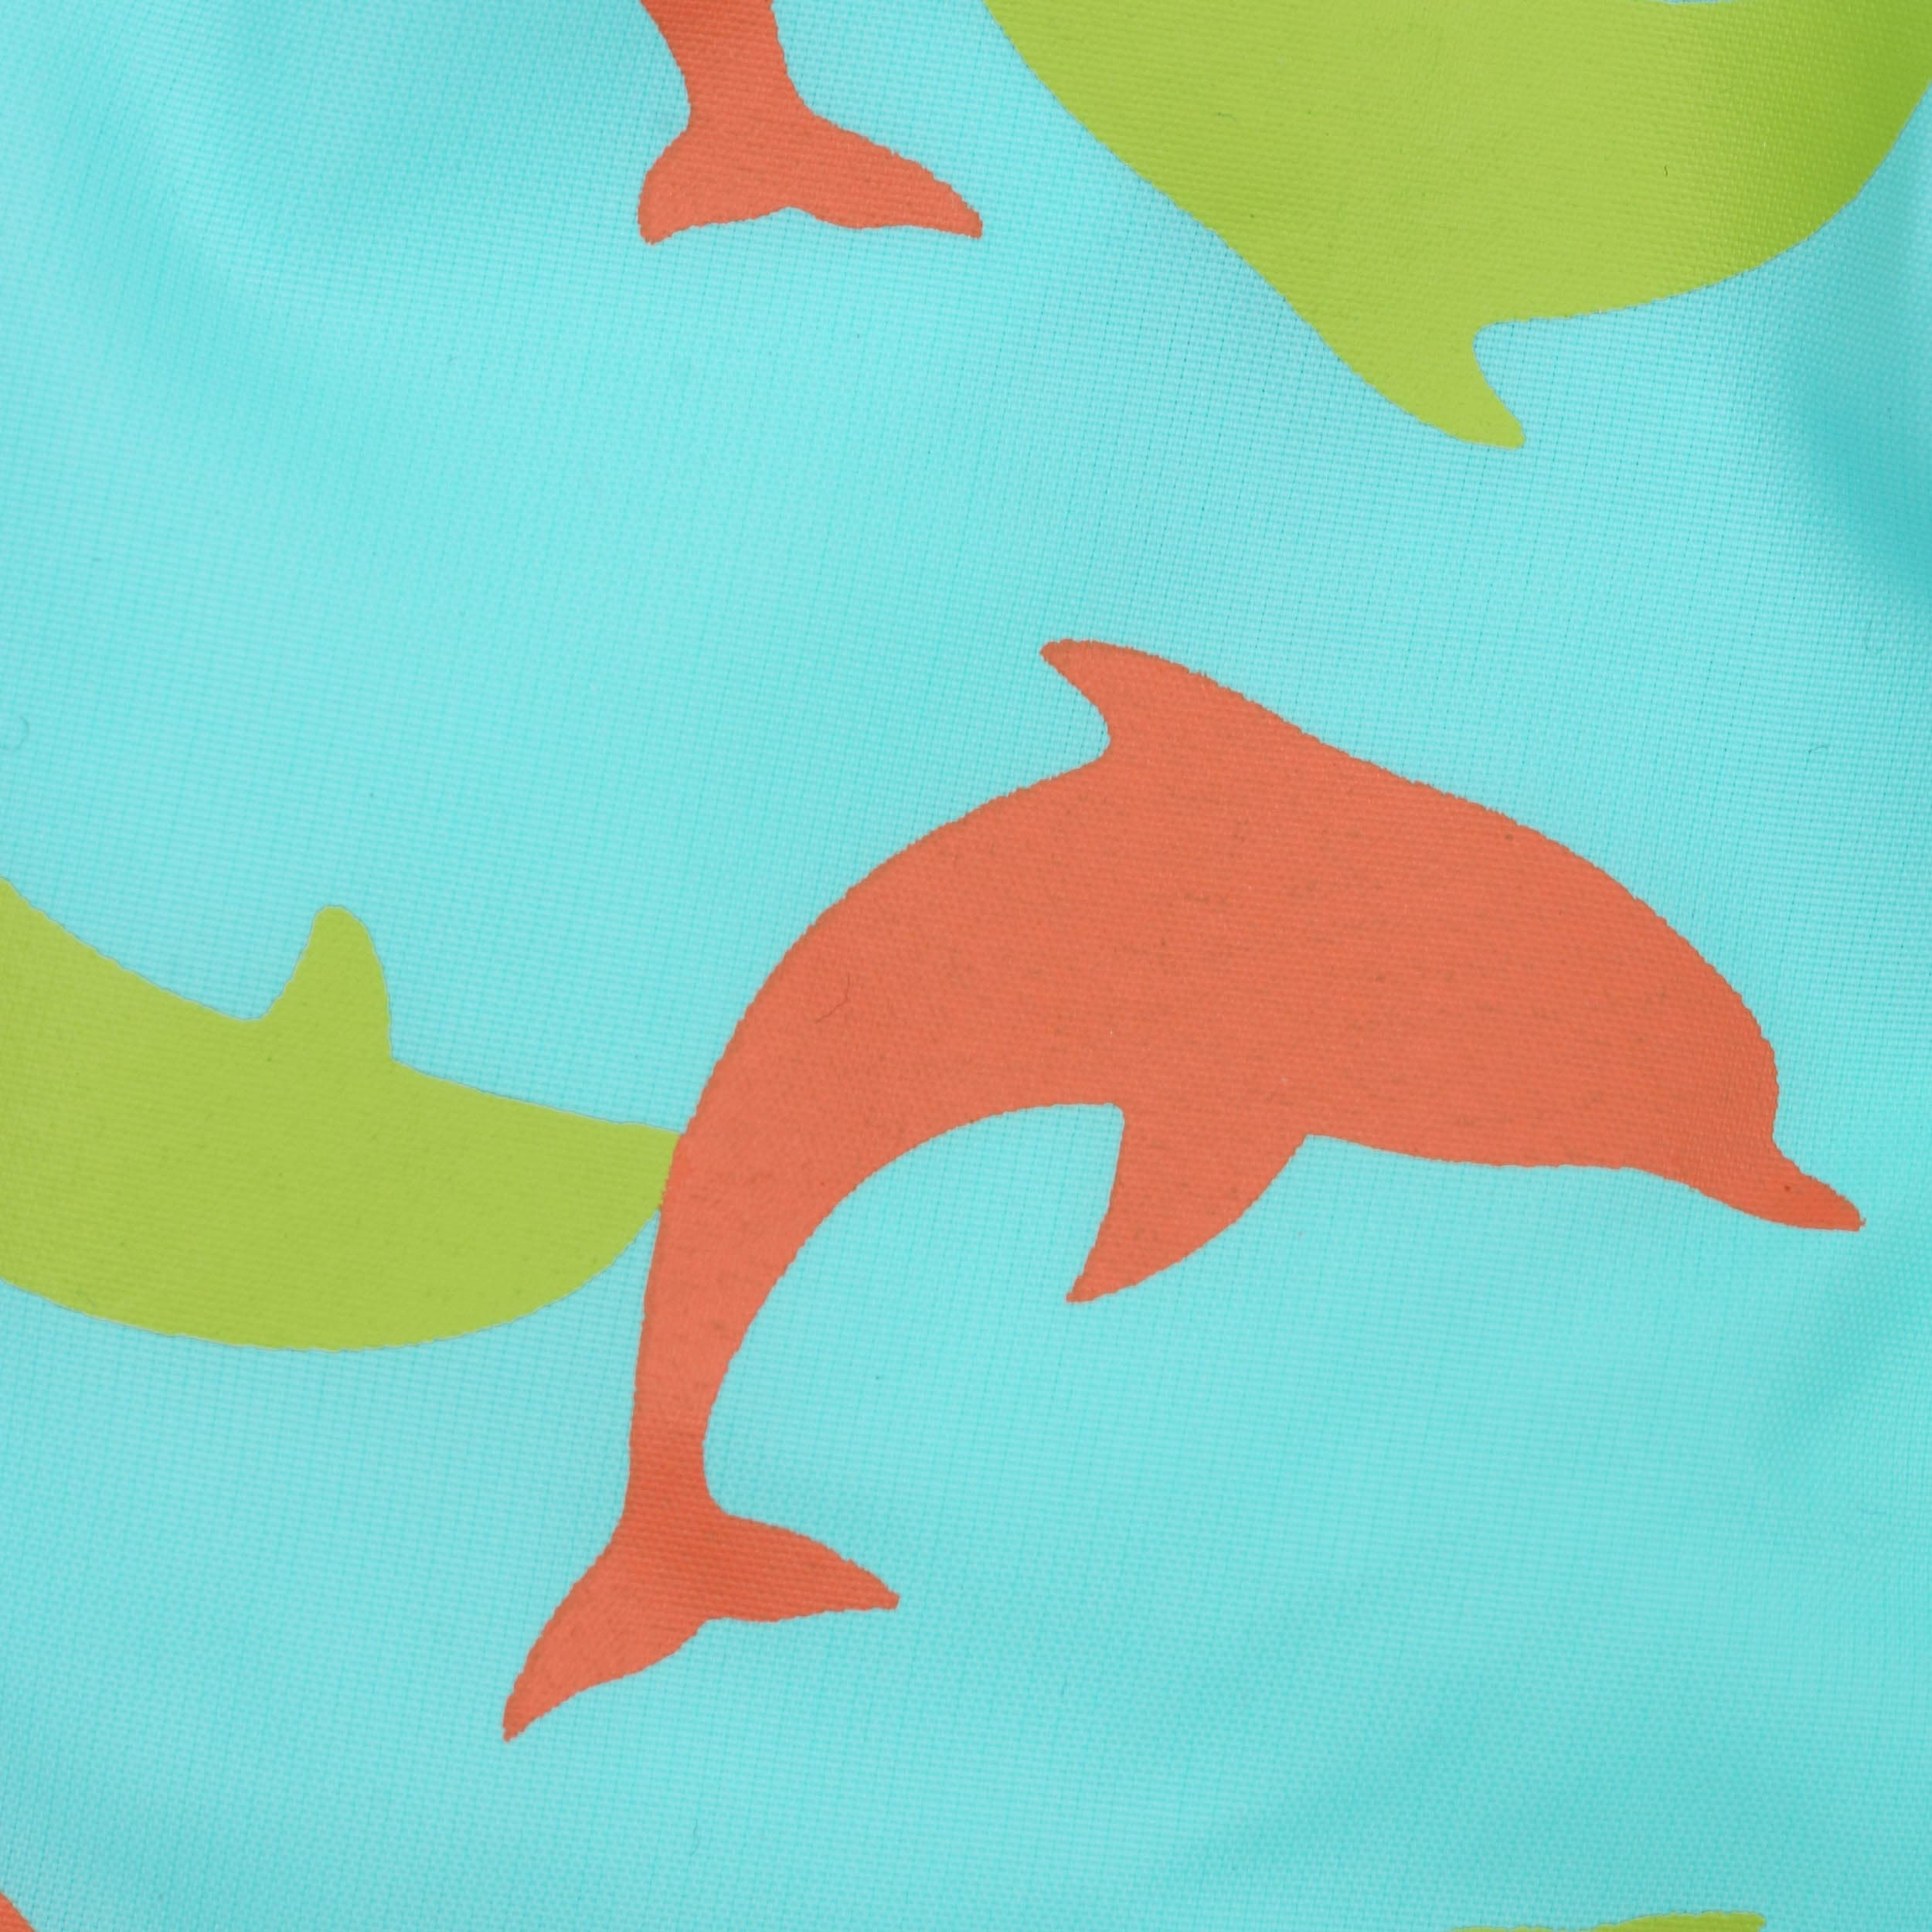 Dolphin Project For Kids - Famous Dolphin 2018